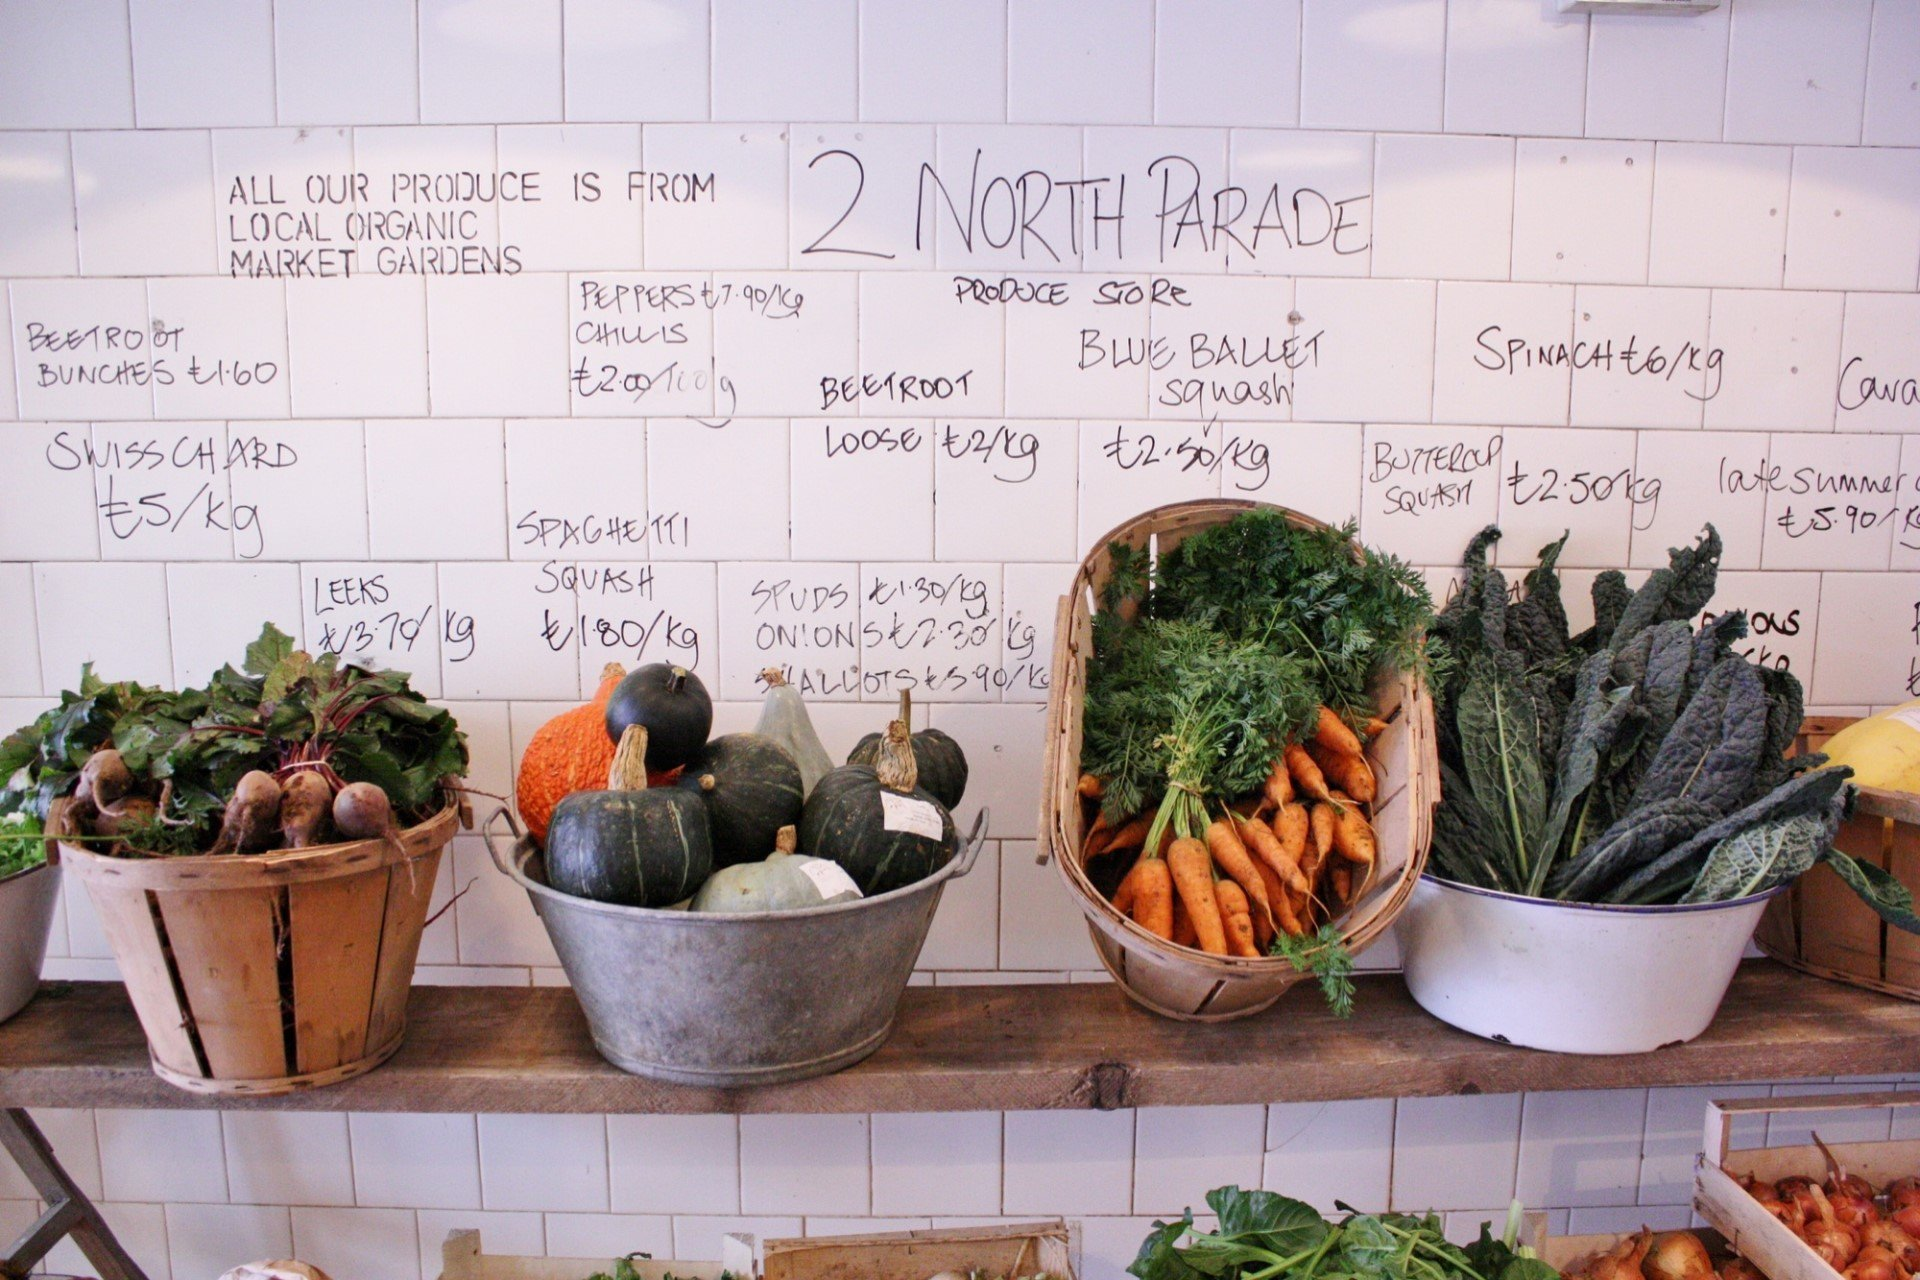 2 North Parade Produce Store, Oxford